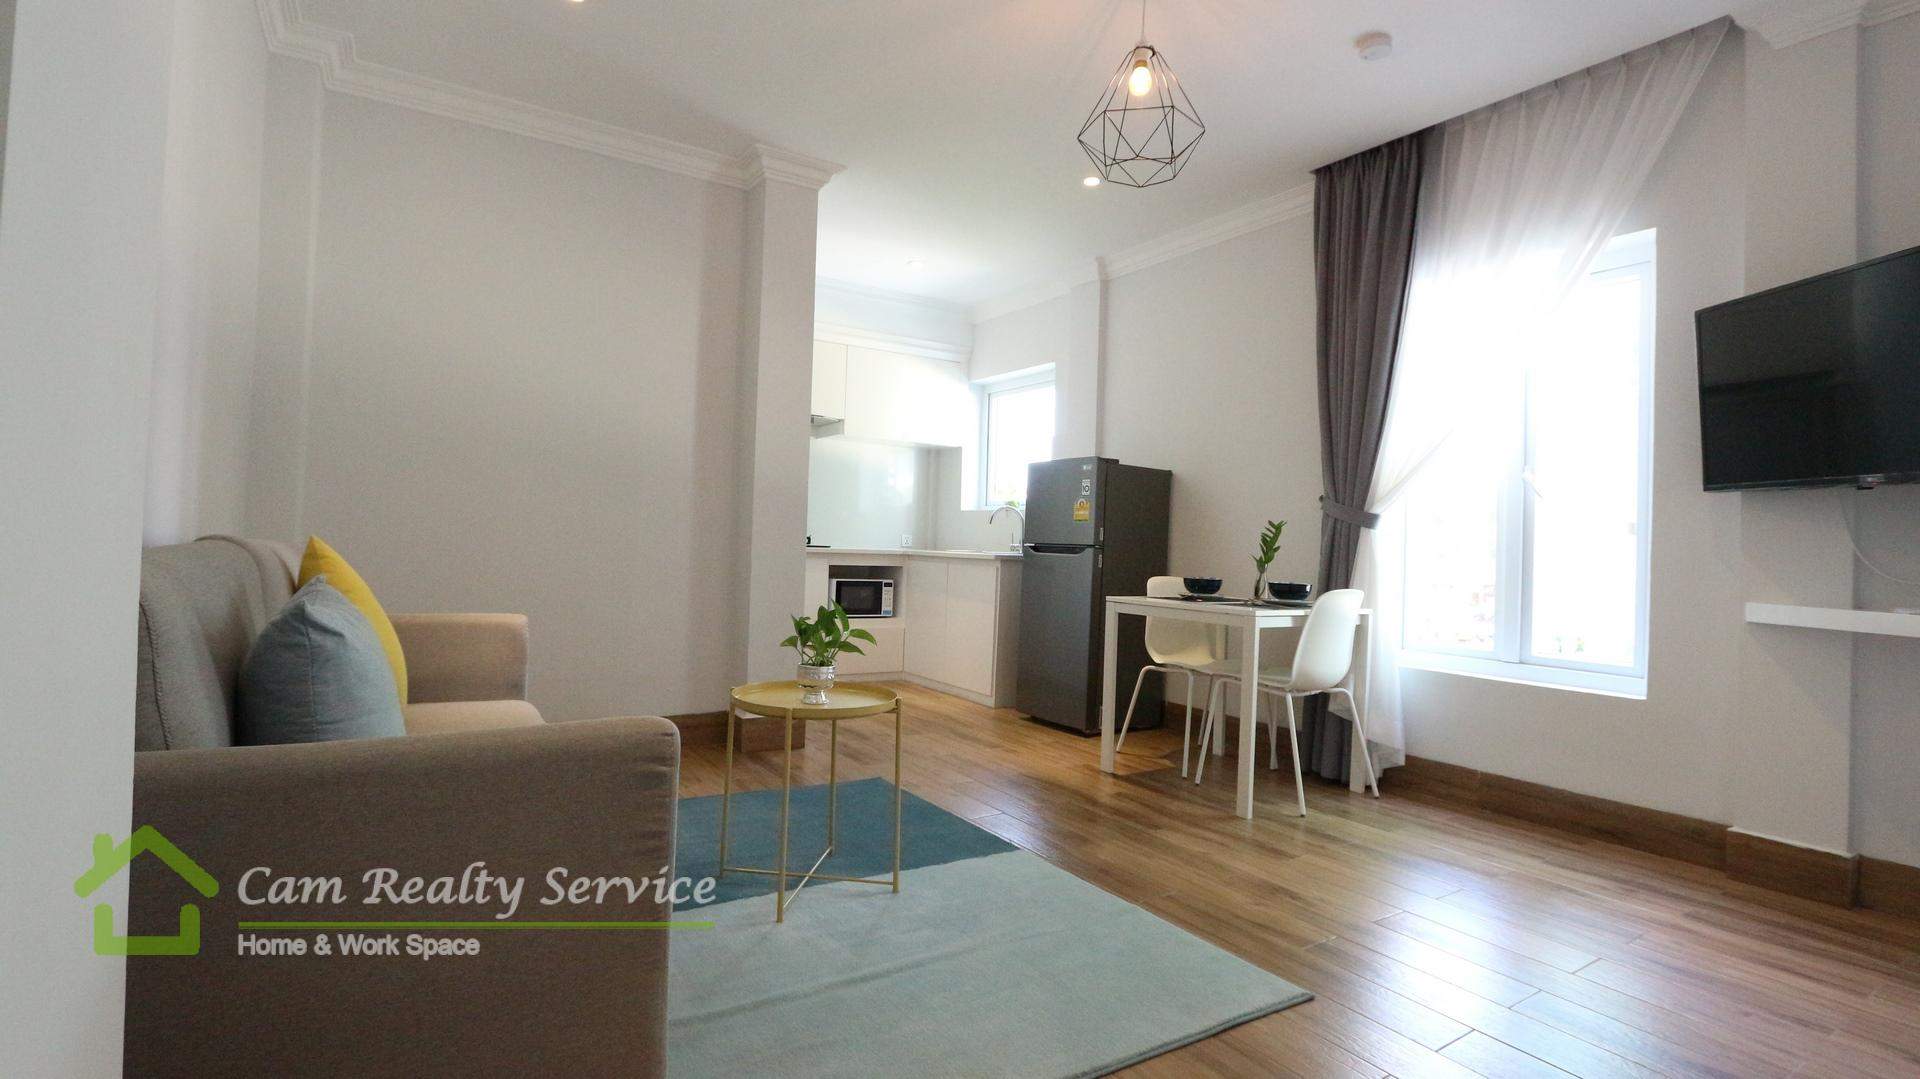 BKK1 area  Modern style 1 bedroom serviced apartment for rent  700$/month Up  Gym